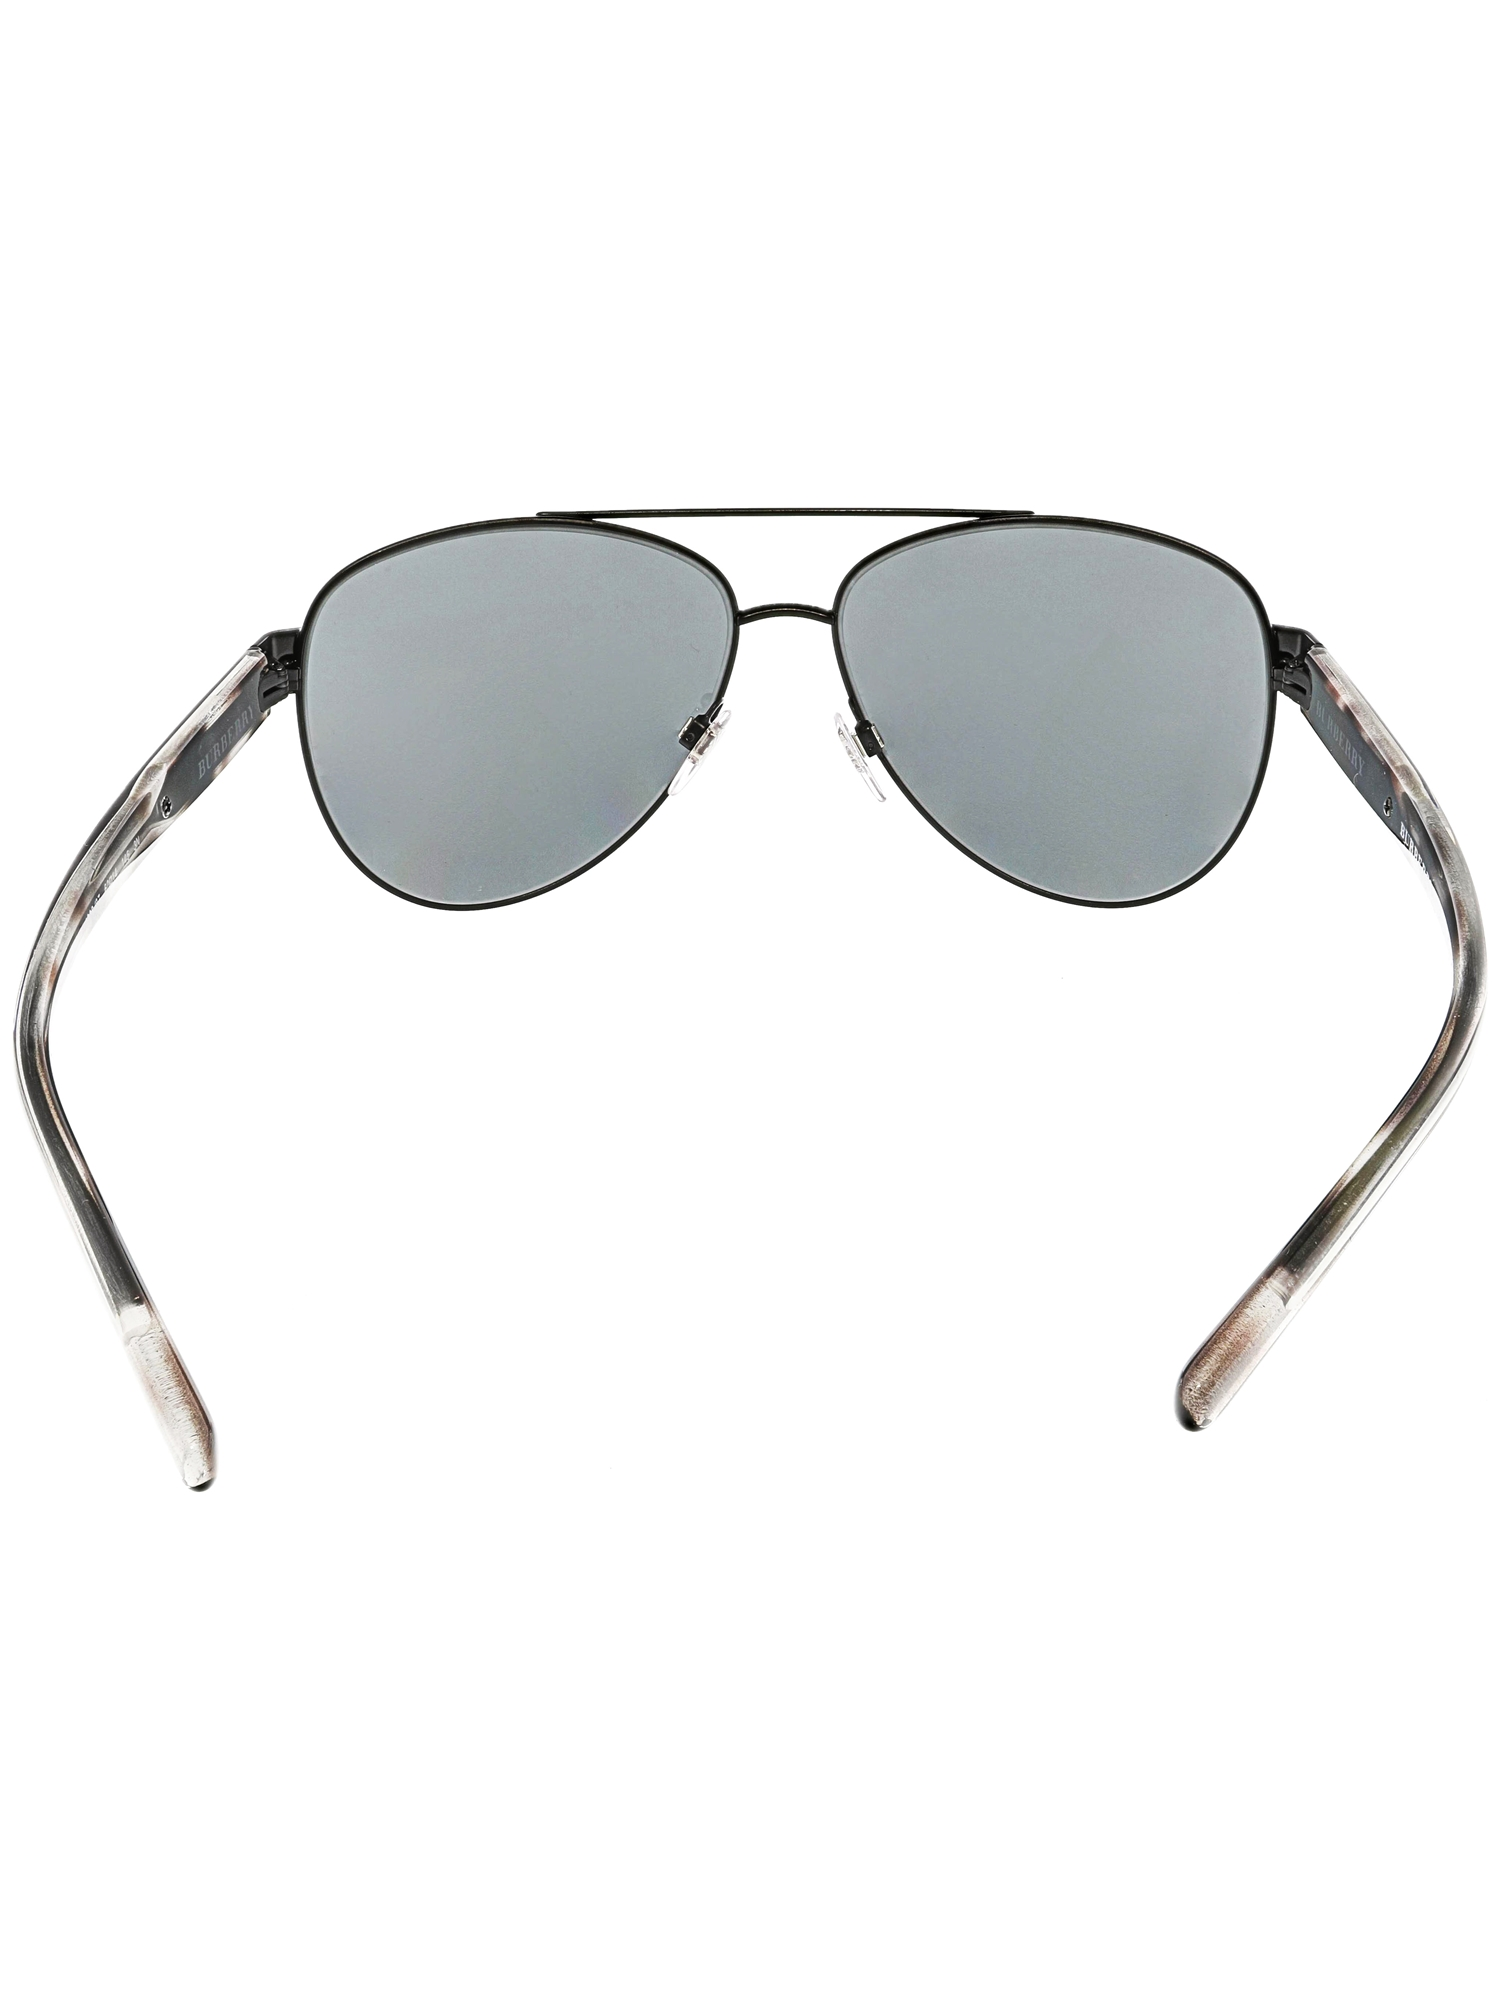 7eab4f51ad85 Burberry - Burberry Women s BE3084-122887-60 Black Aviator Sunglasses -  Walmart.com